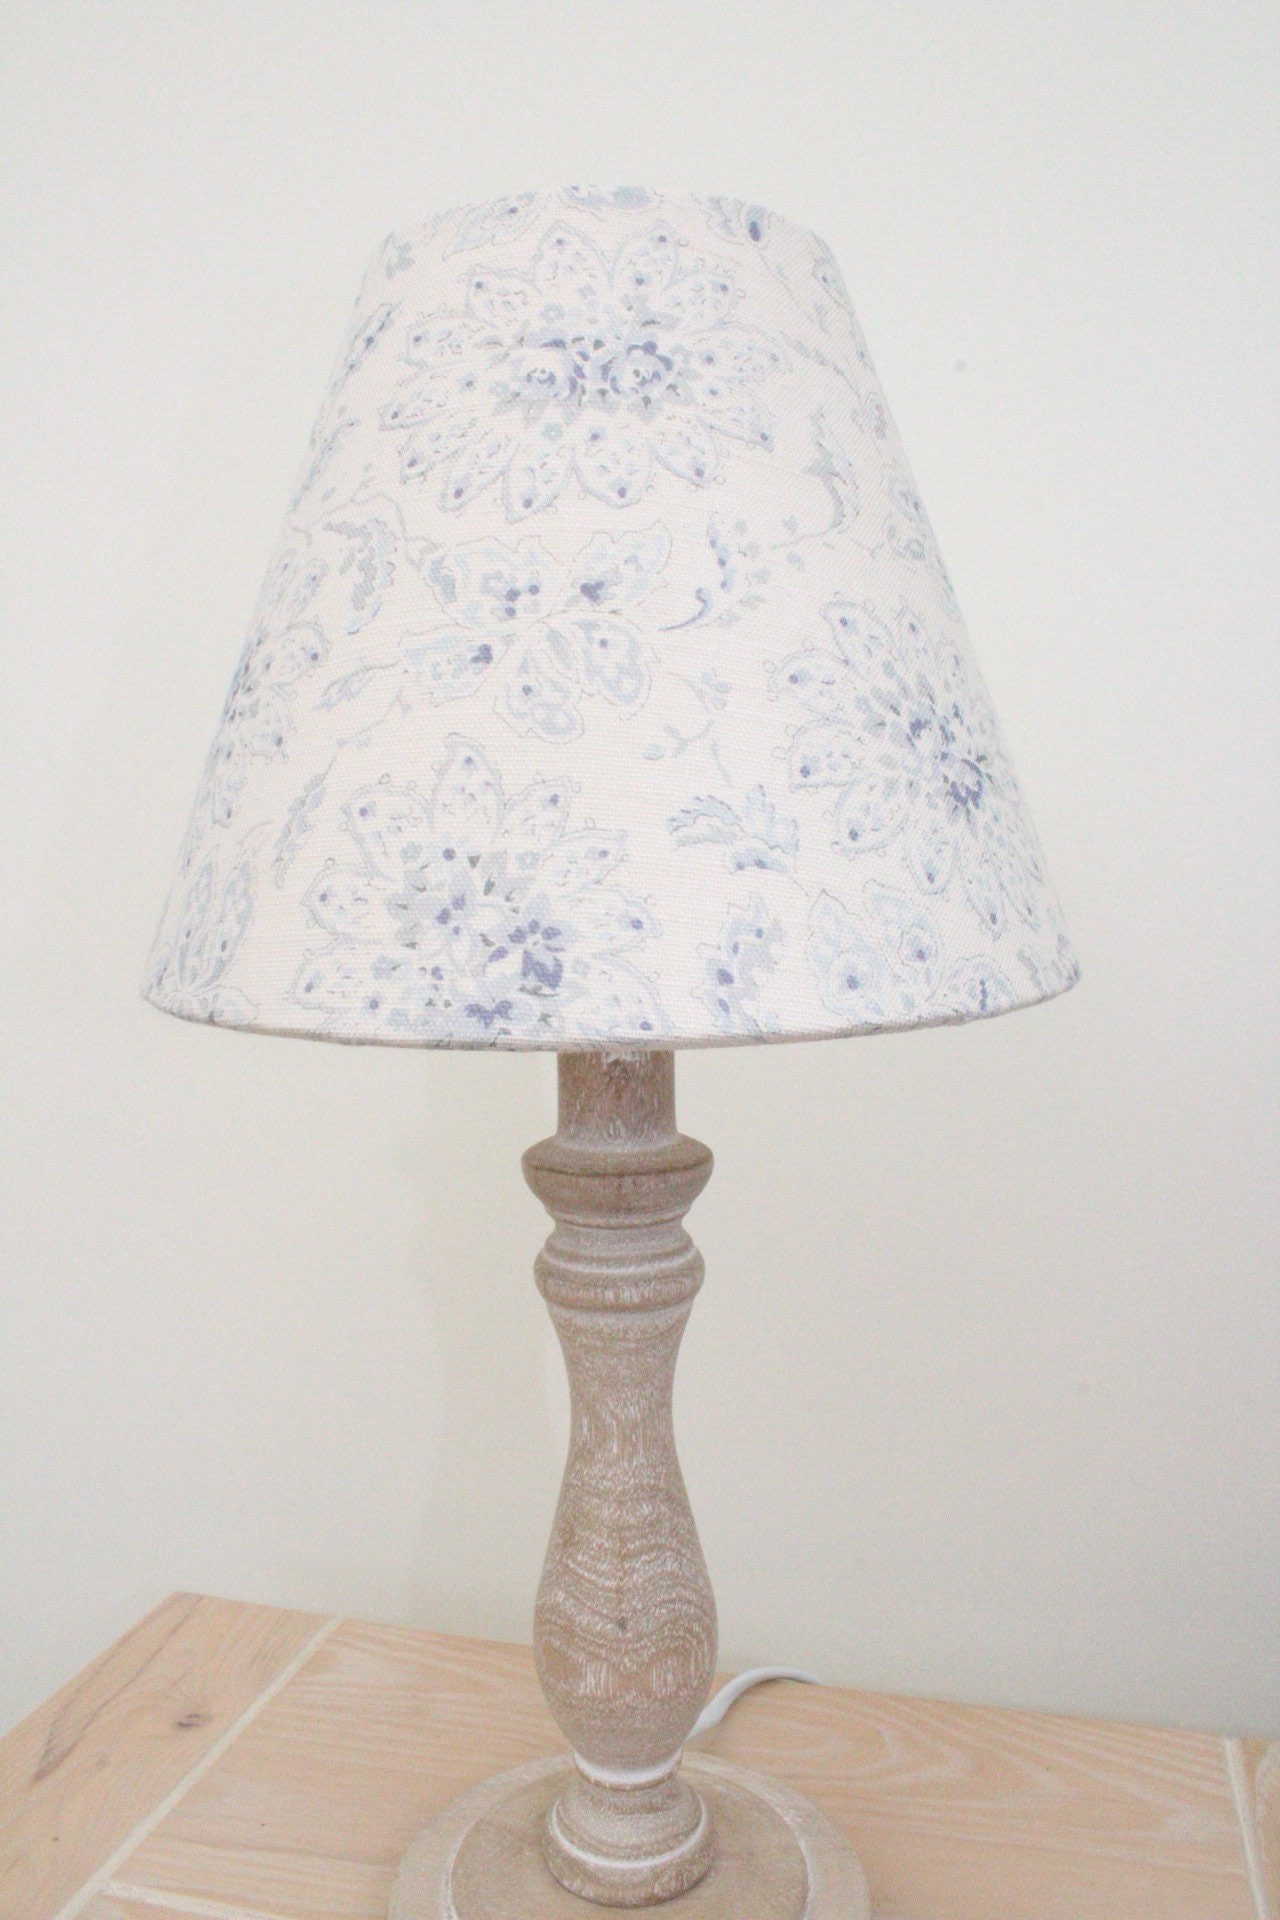 Lampshade/Home Decor/Table Lamp/Floor Lamp/Lighting/Empire Lamp  Shade/Floral/Linen/Shabby Chic/French Country/Cottage/Sarah Hardaker